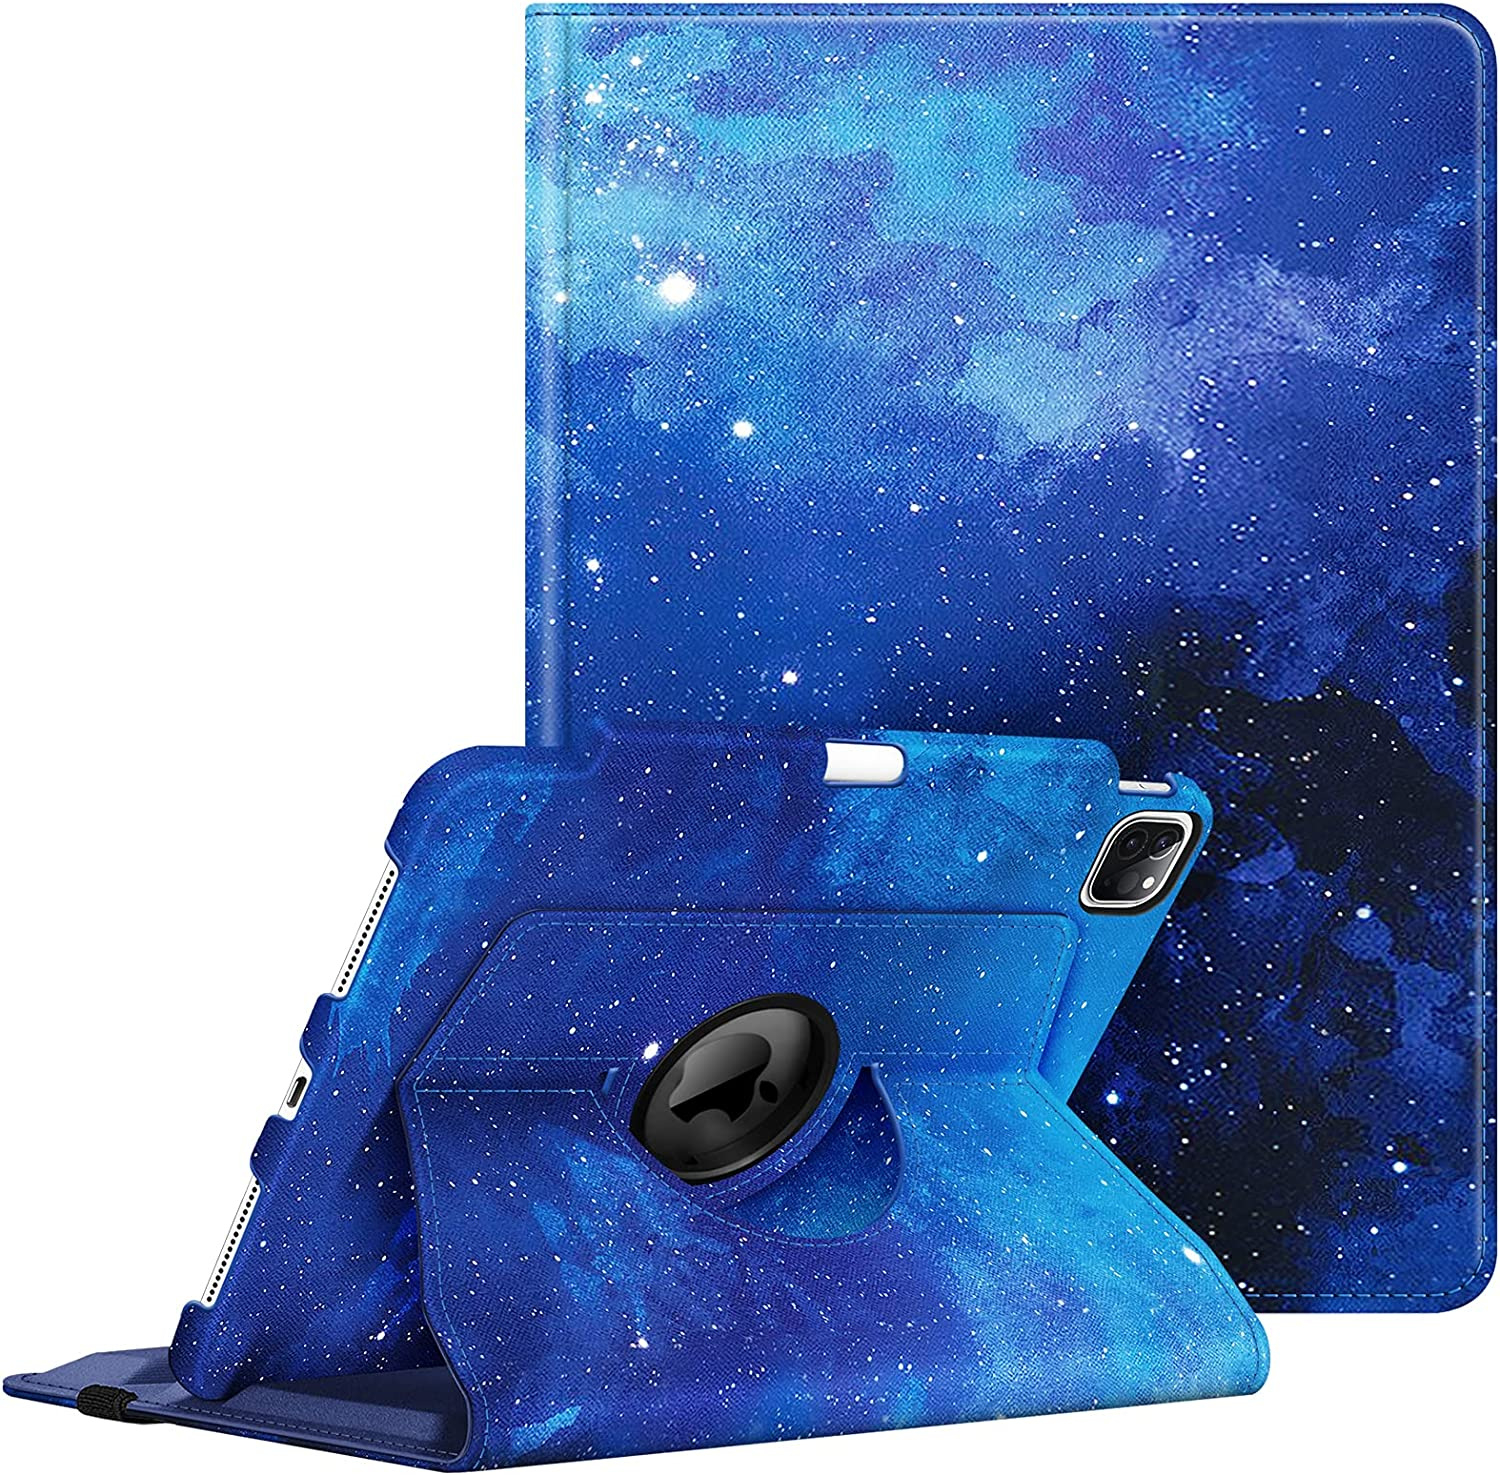 Fintie Rotating Case for iPad Pro 11-inch (3rd Generation) 2021 - 360 Degree Swiveling Stand Cover w/Pencil Holder, Auto Wake / Sleep, Also Fit iPad Pro 11